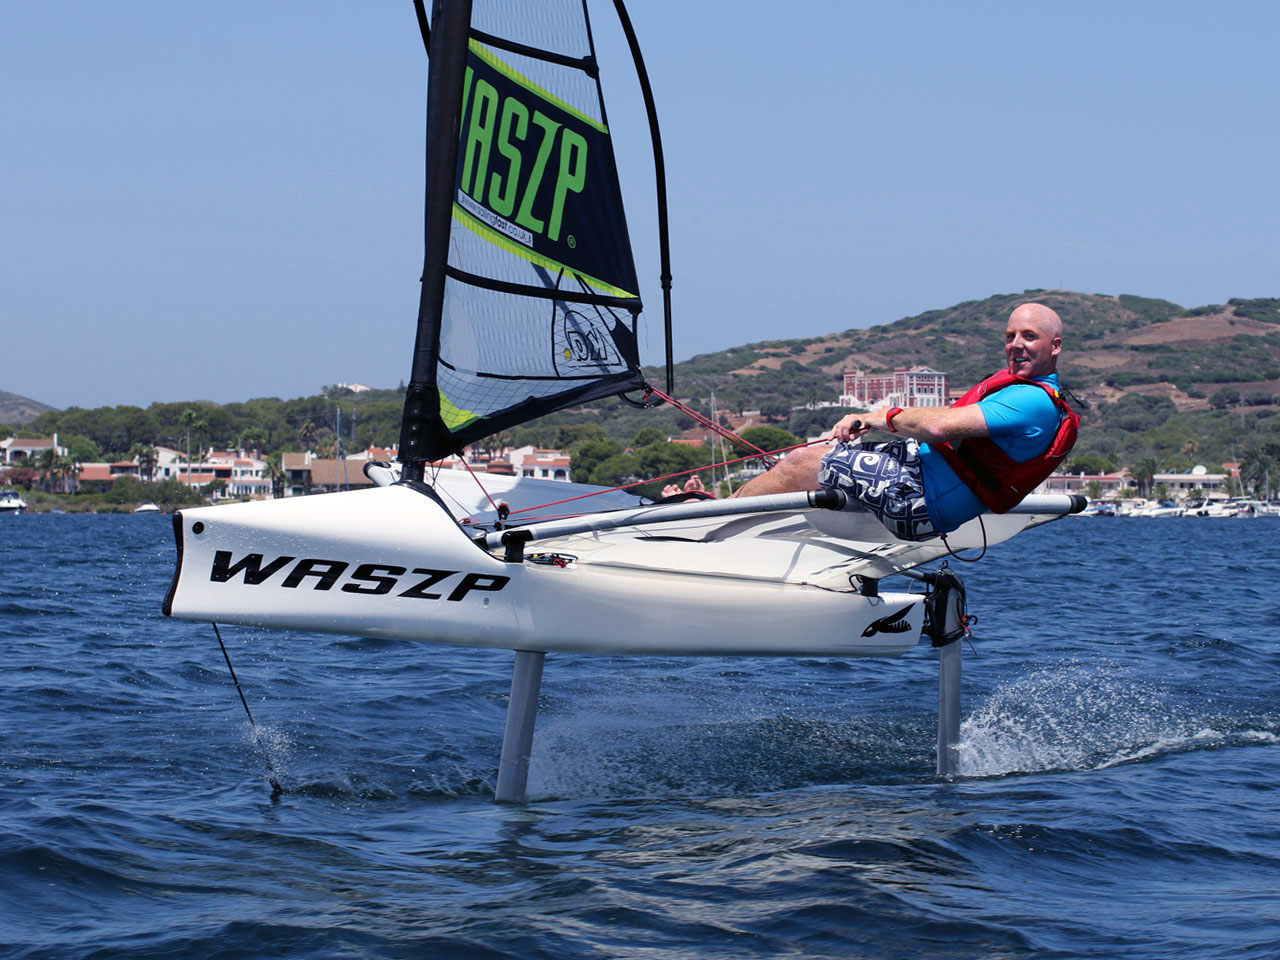 The Foiling Waszp